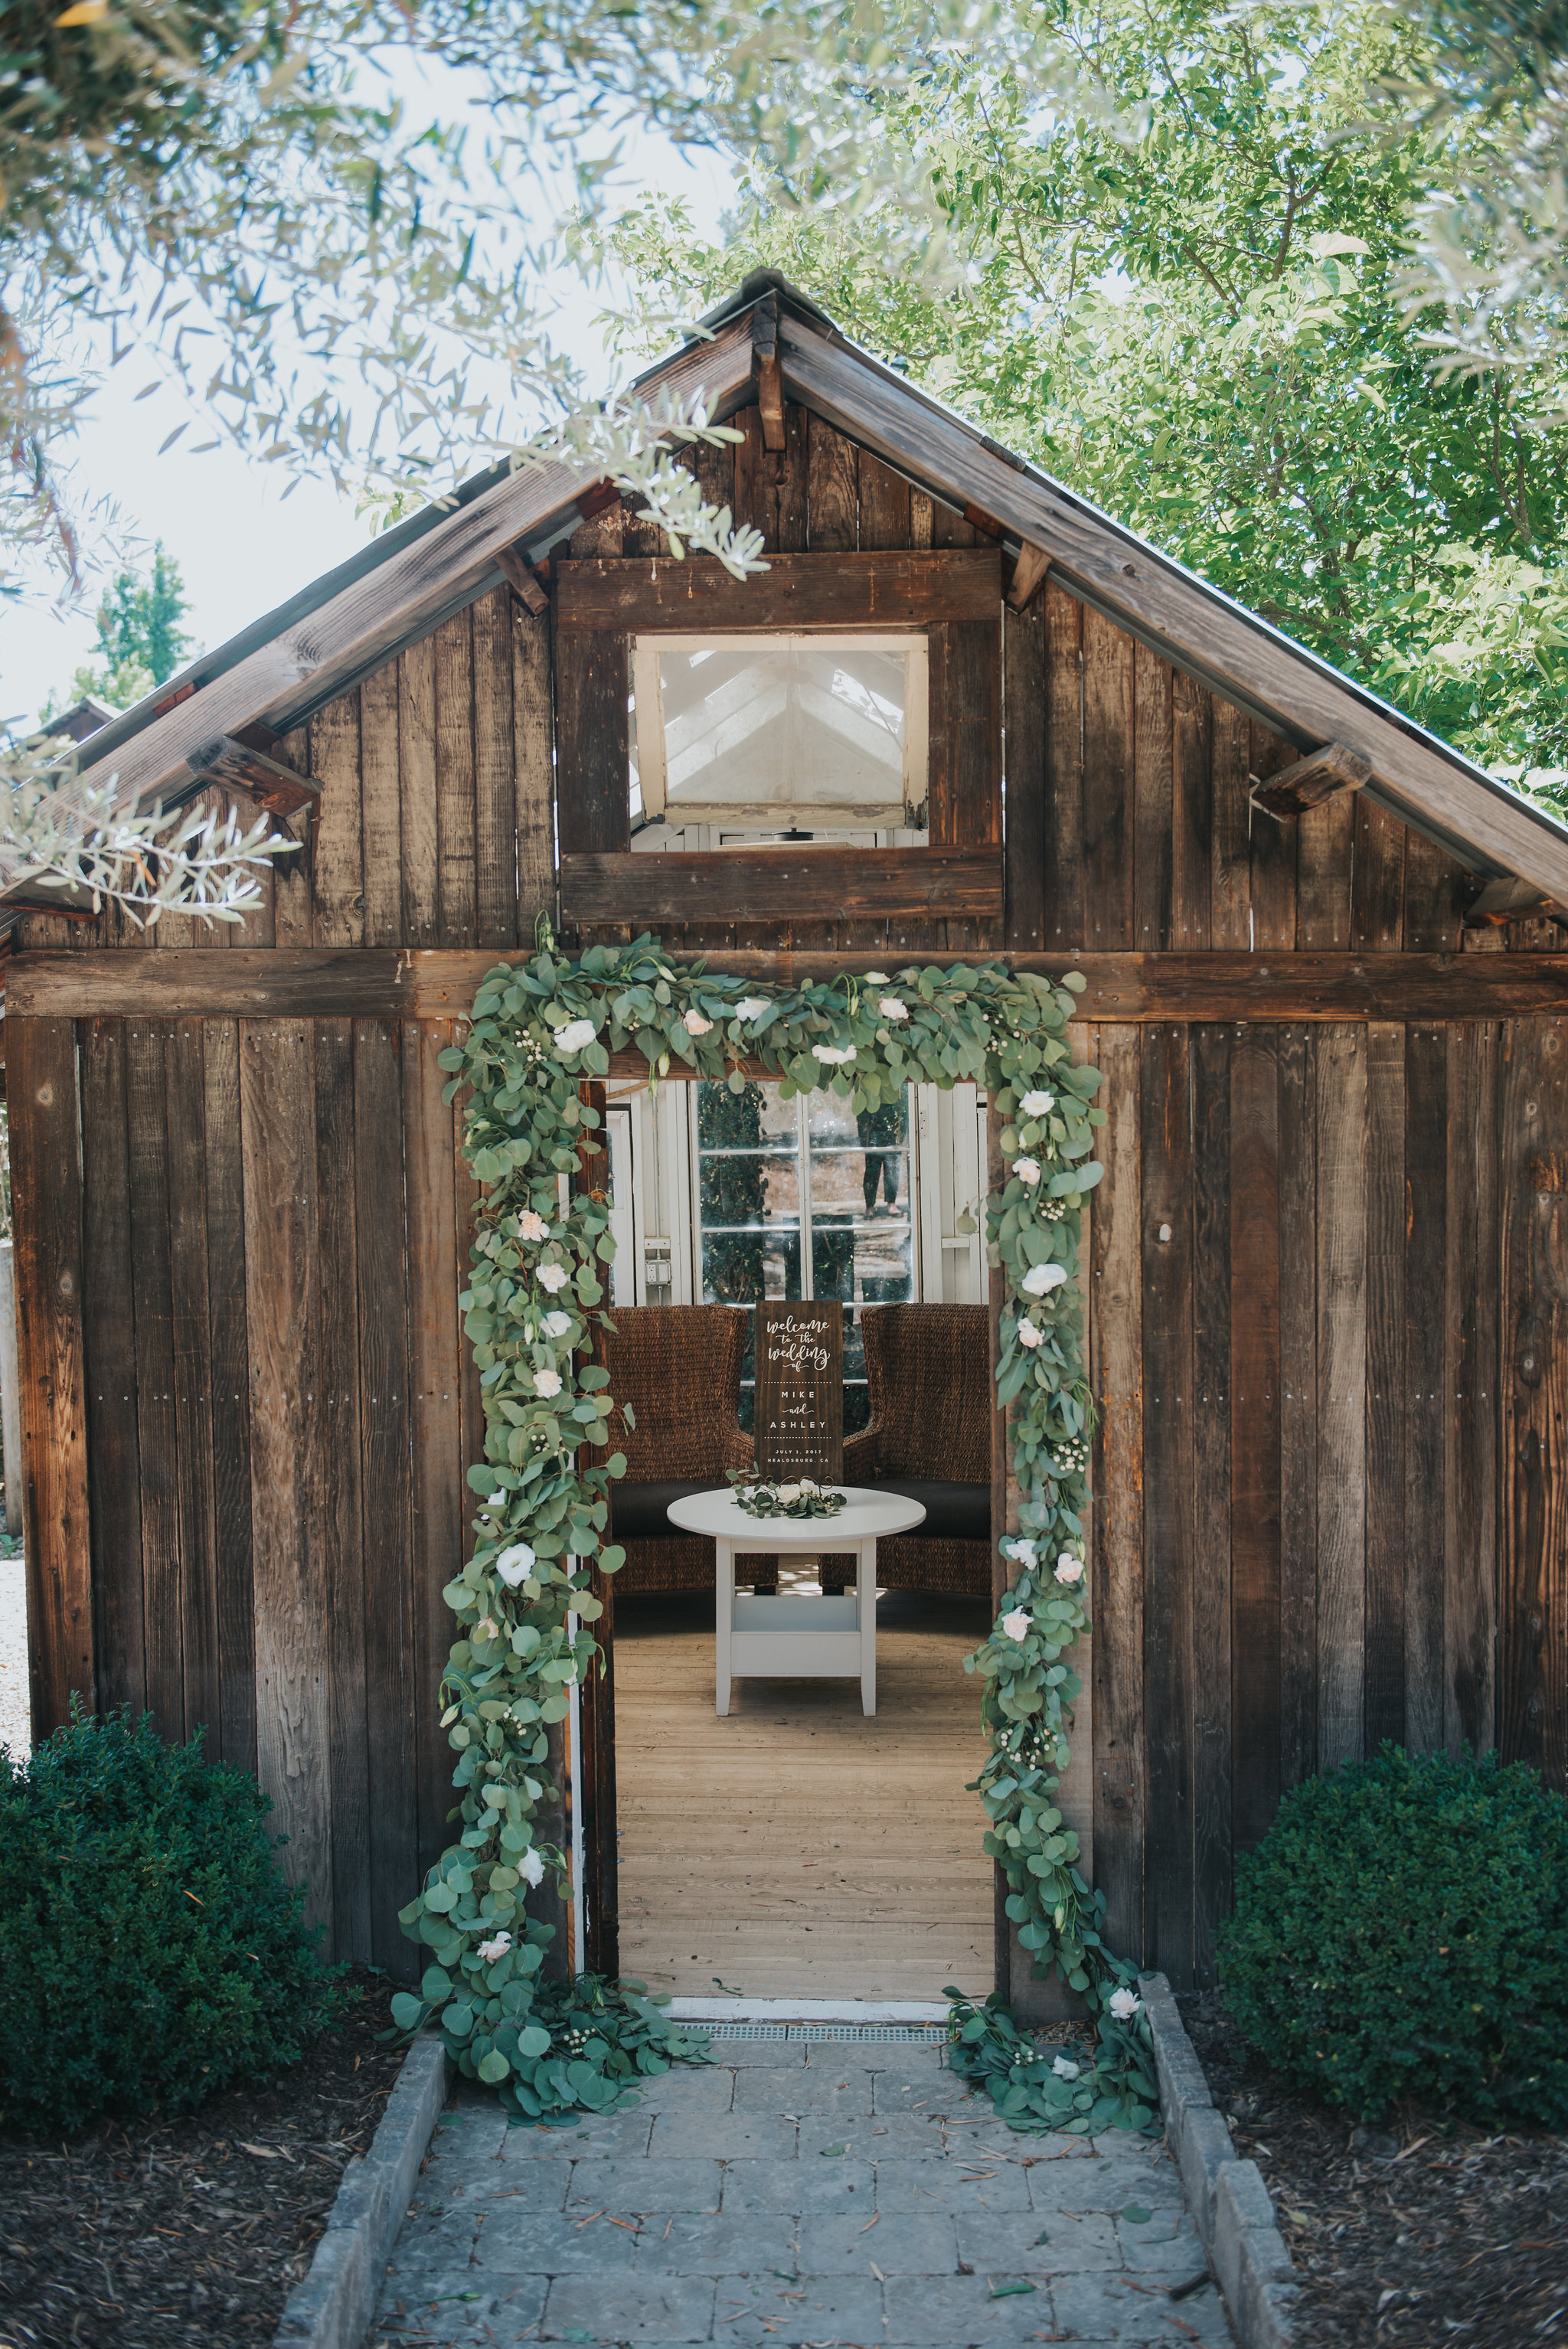 Rus-Farm-Wedding-Healdsburg-Heald-Wedding-Consulting-potting-shed-hwc.jpg